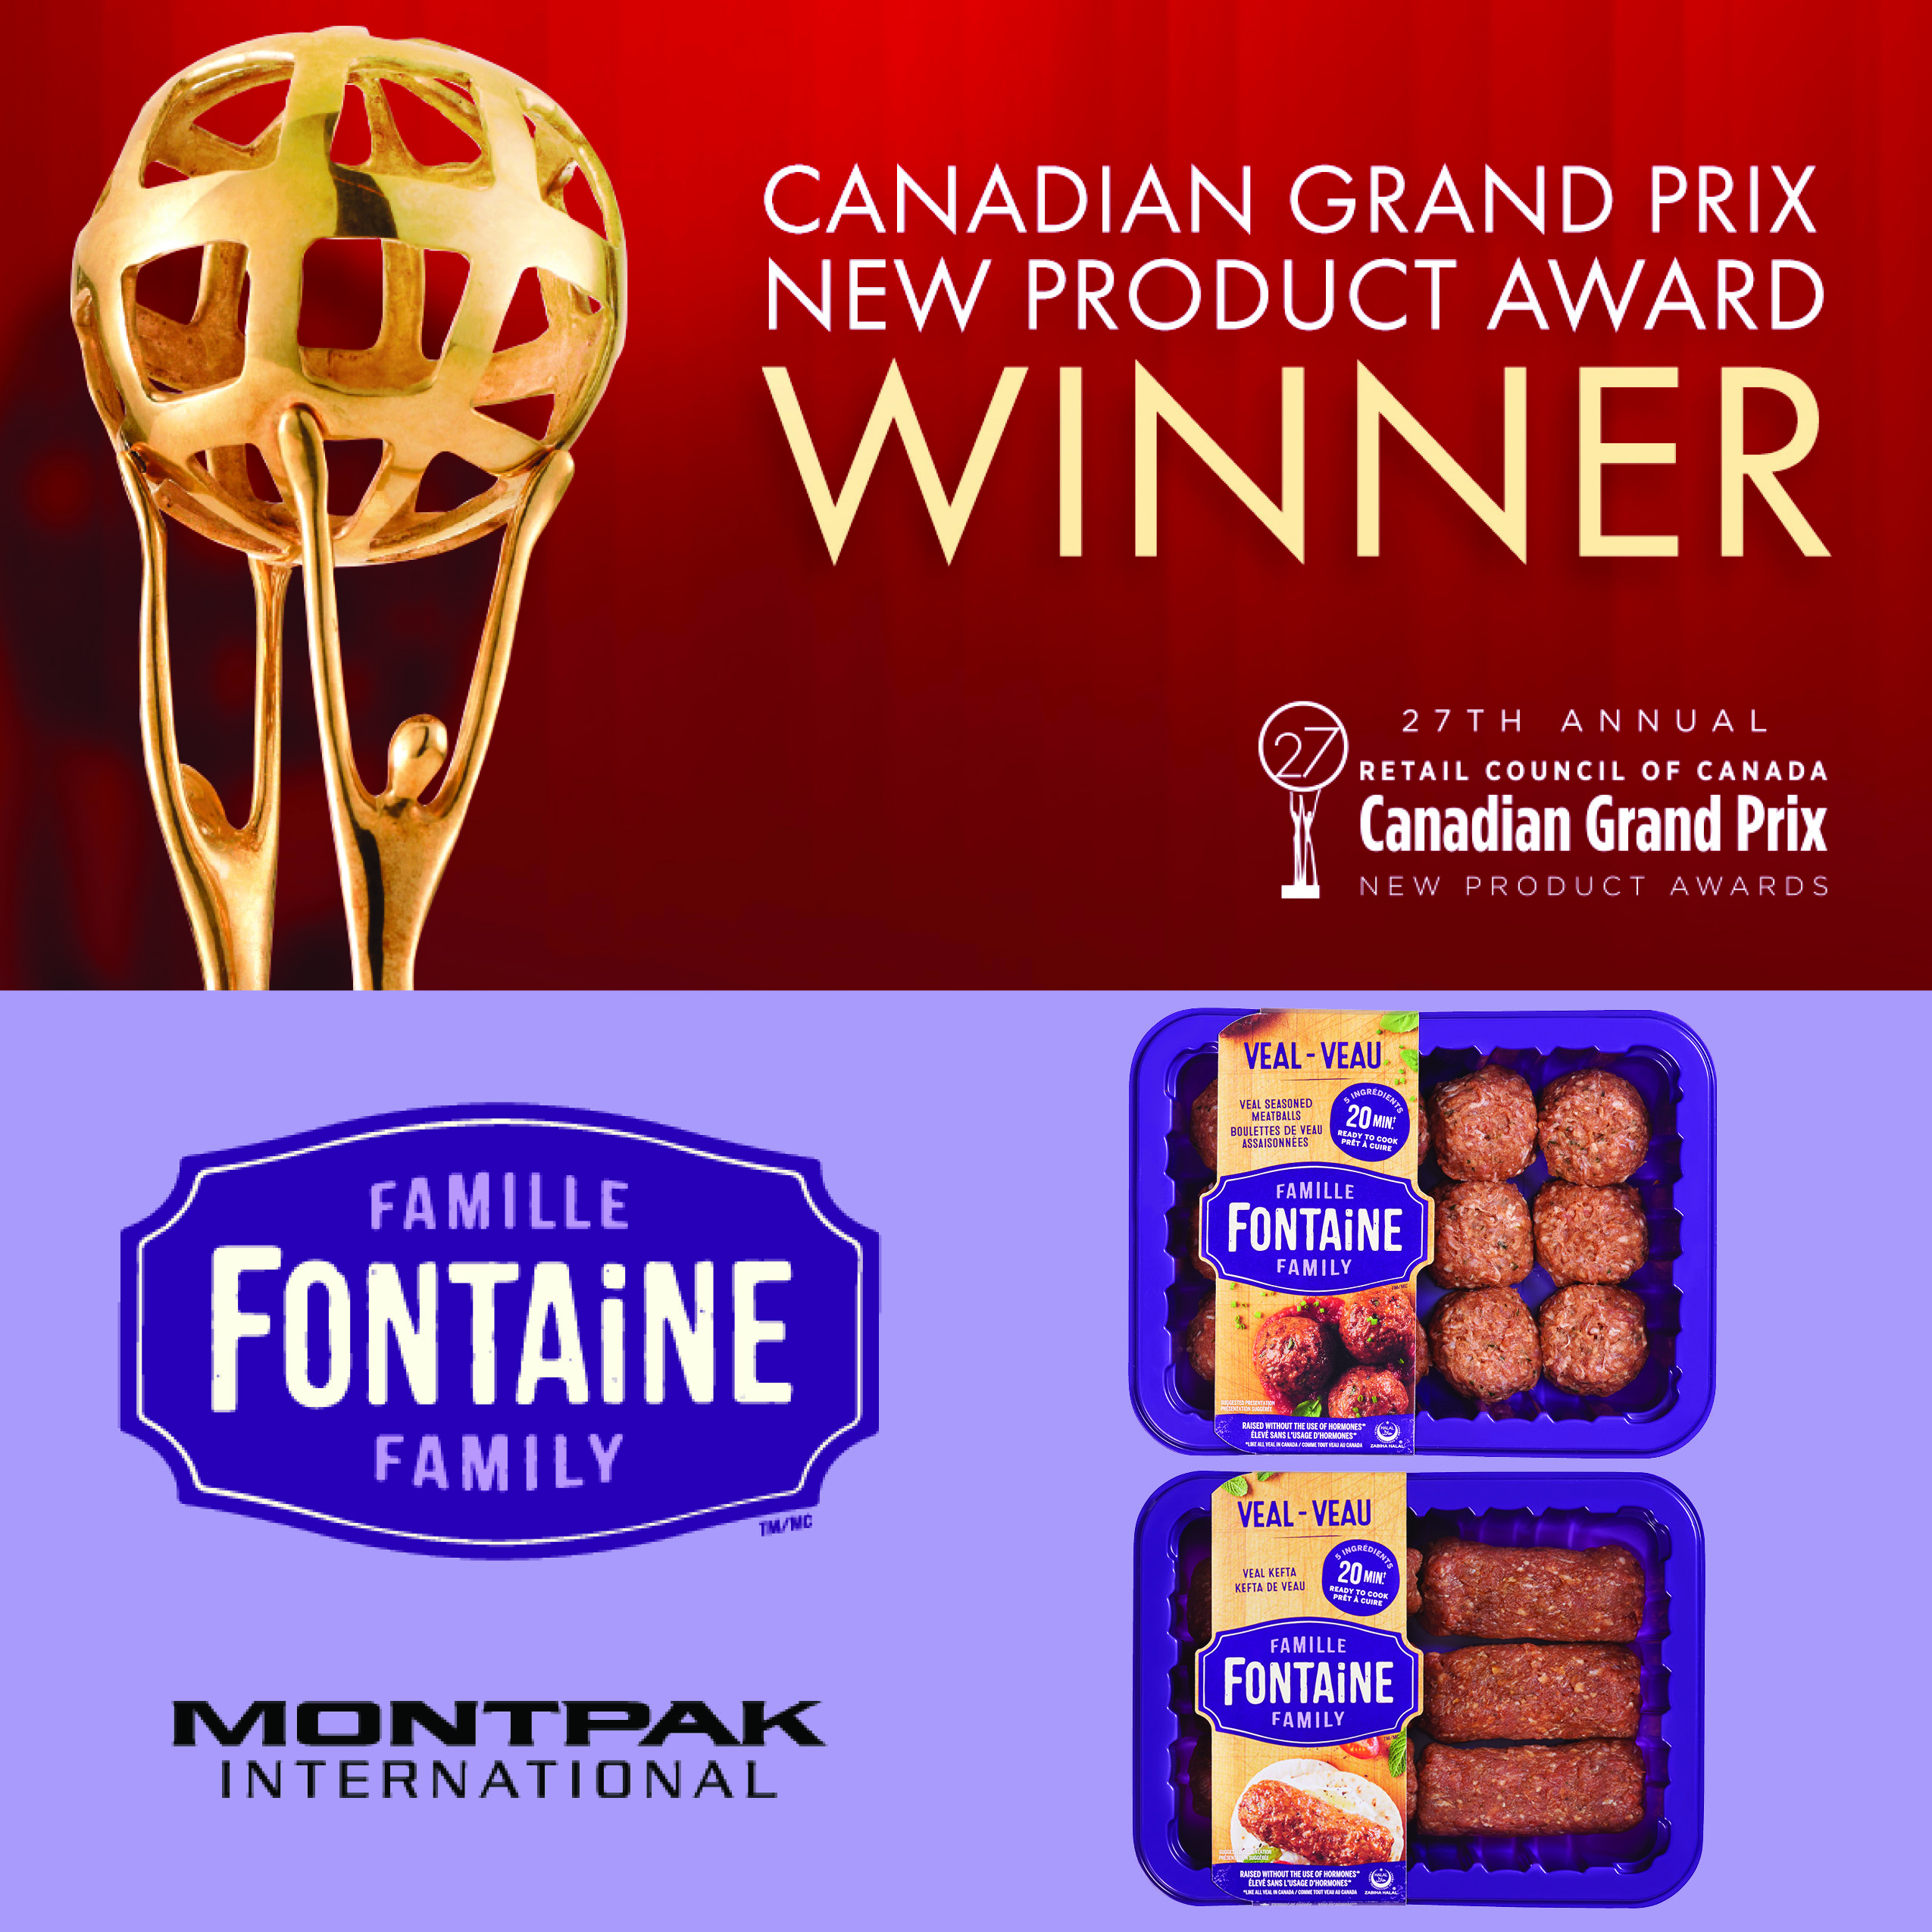 Canadian Grand Prix New Product Award Winner